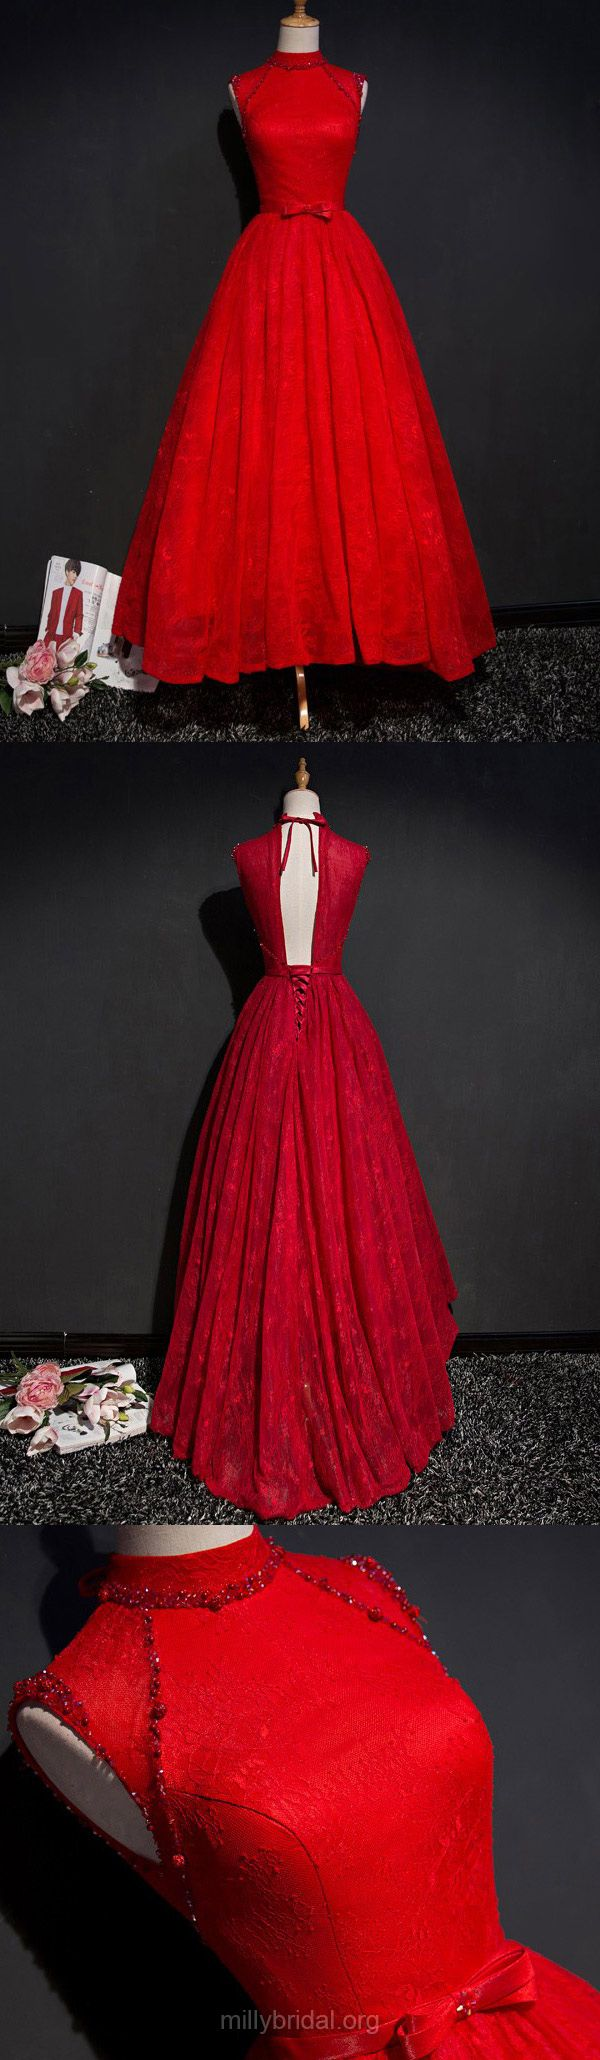 Red Prom Dresses Ball Gown,Long Prom Gowns High Neck, Lace Party Dresses Asymmetrical,Sashes / Ribbons Modest Prom Dresses Unique